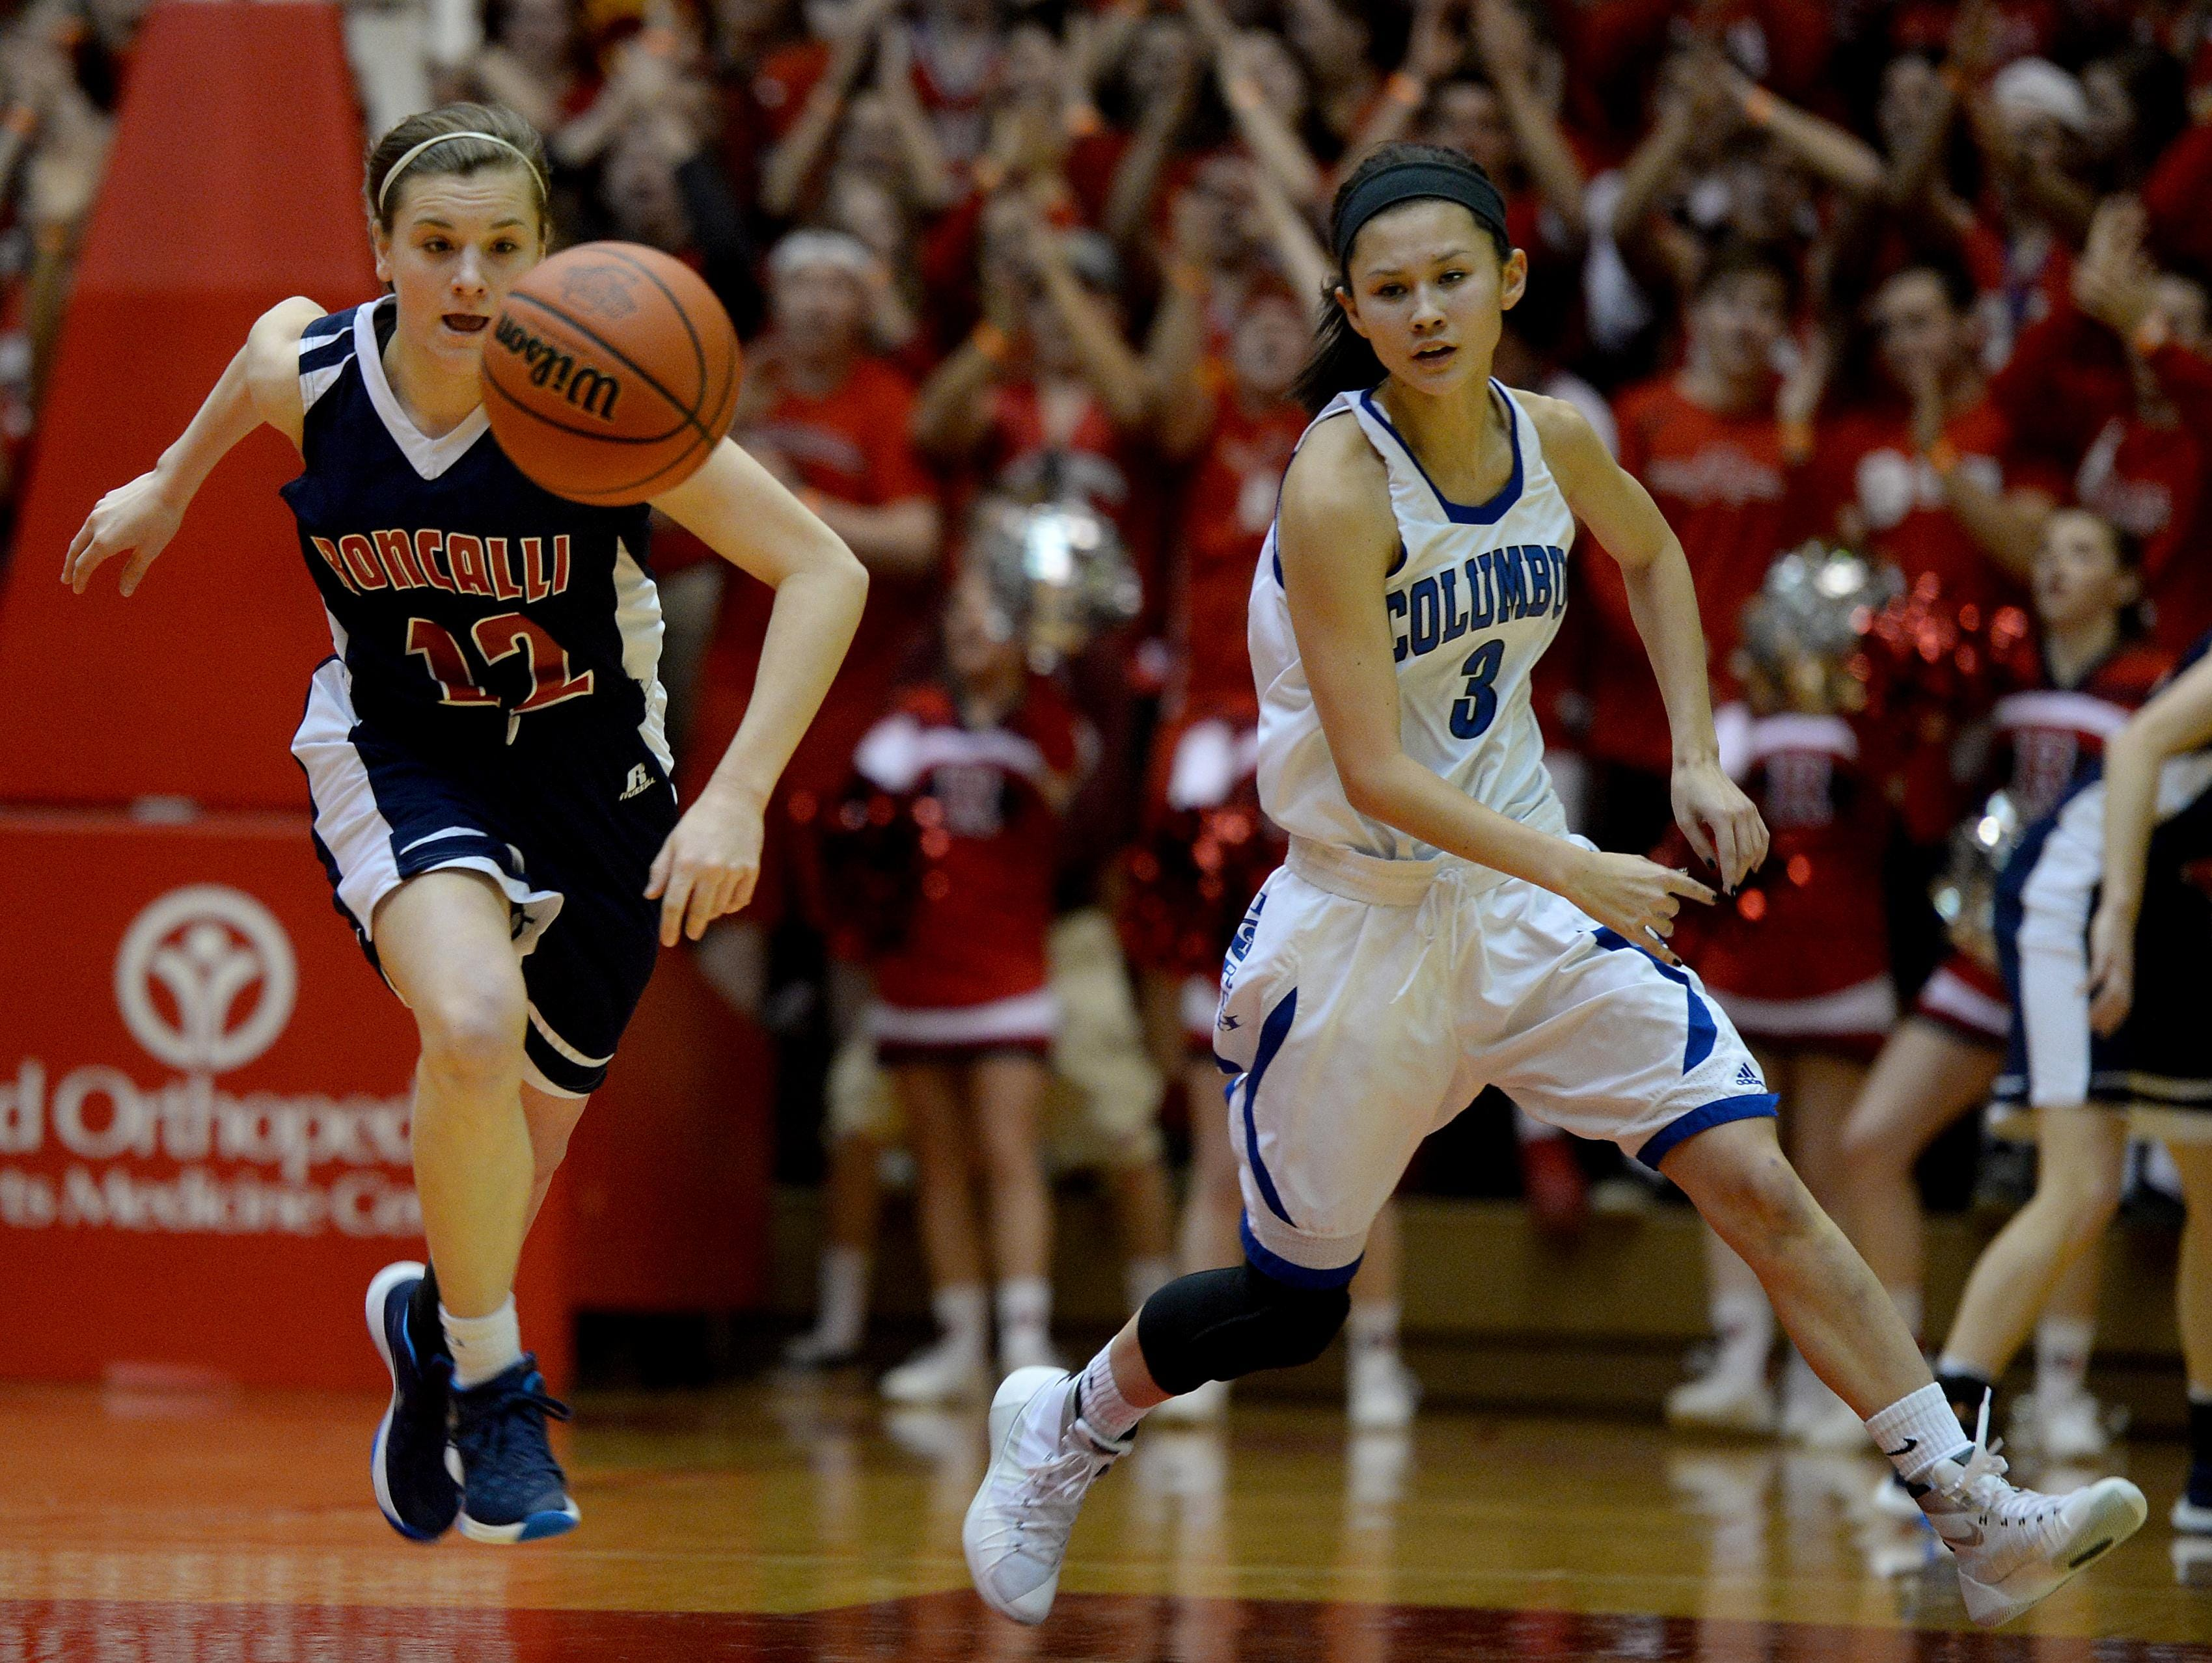 Roncalli's Paige Saylor, left, and Columbus North's Emily Kim chase down a loose ball during the IHSSA girls basketball class 4A semistate game Saturday at the Tiernan Center in Richmond High School.